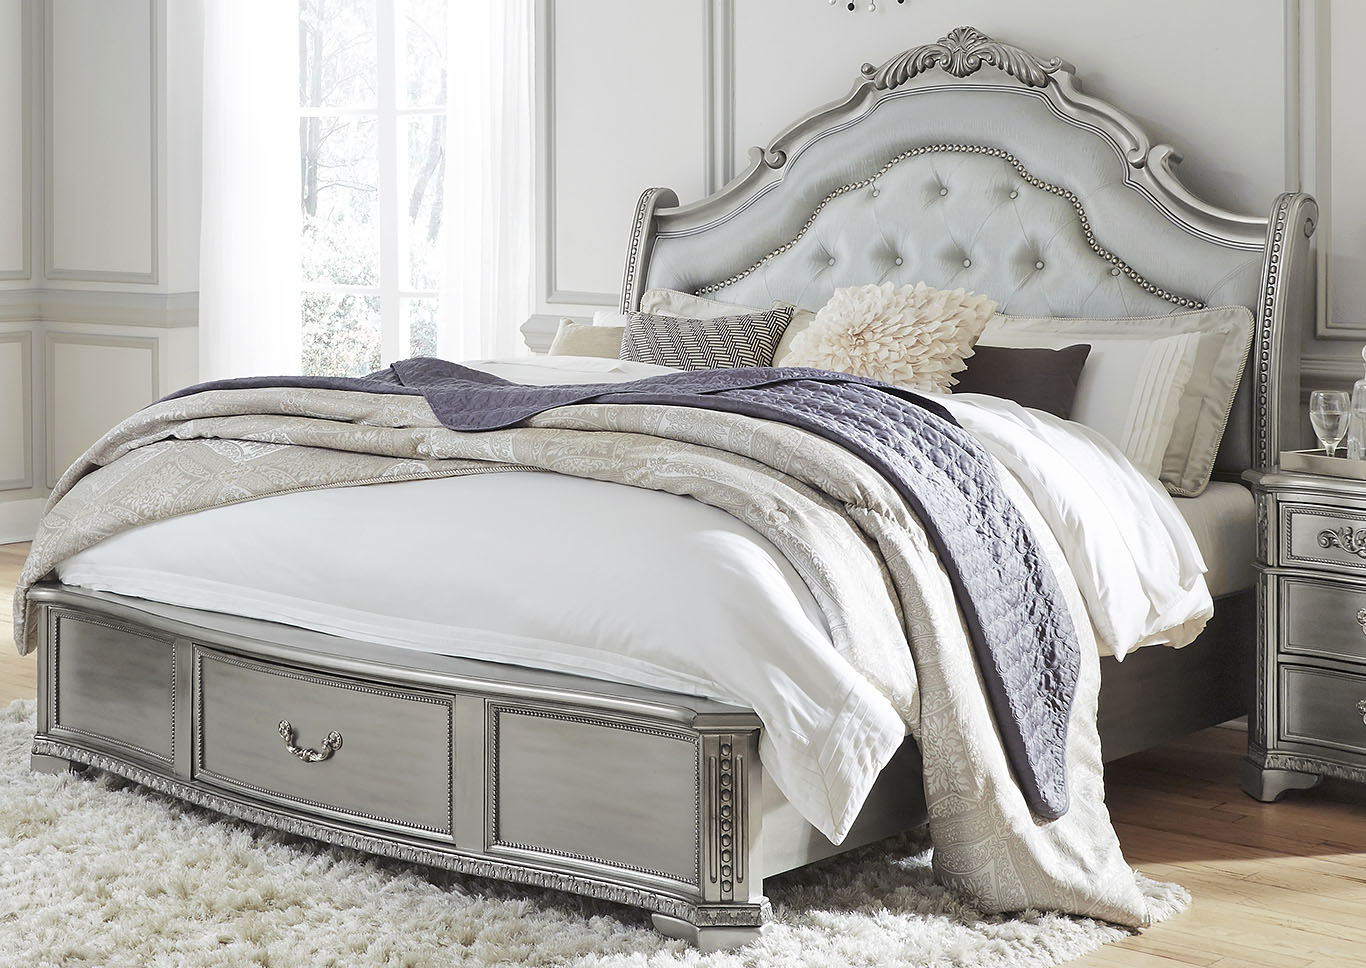 Juliet Silver King Bed,Global Furniture USA